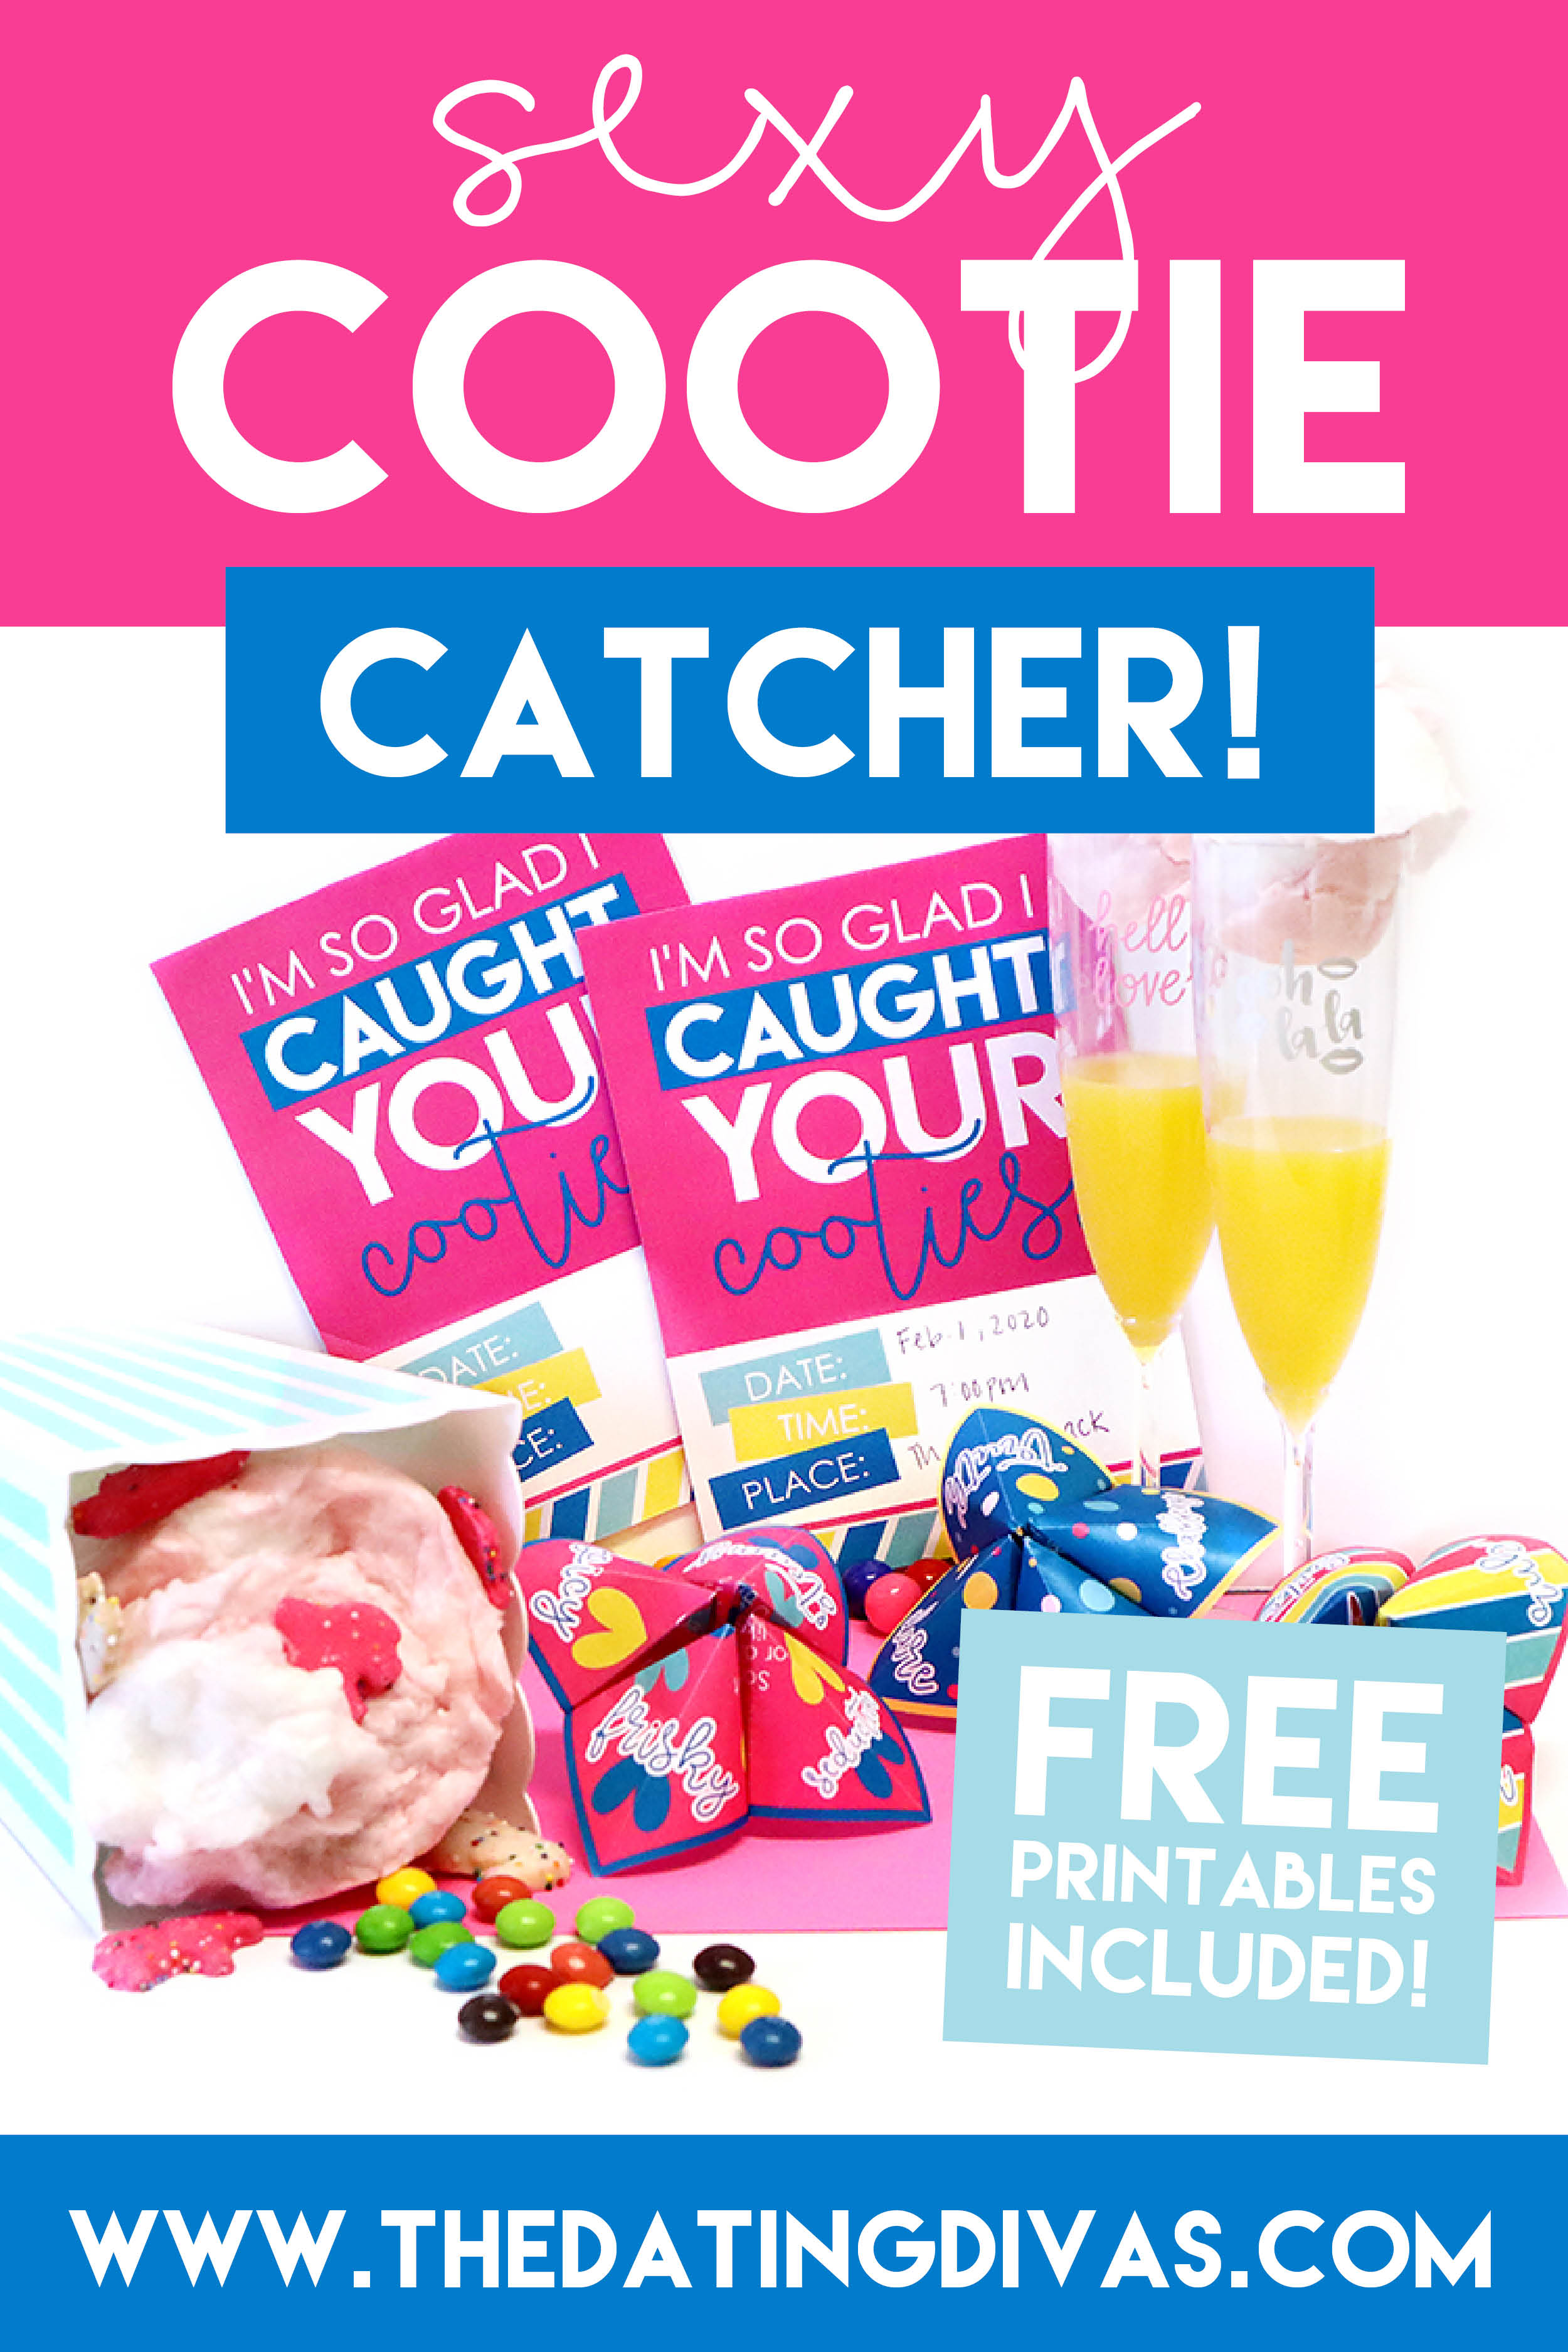 My husband loved playing these sexy cootie catchers! These nostalgic games took us back to our childhood! Three free printable game options and a whole lot of sexiness! #cootiecatcher #truthordare #datenight